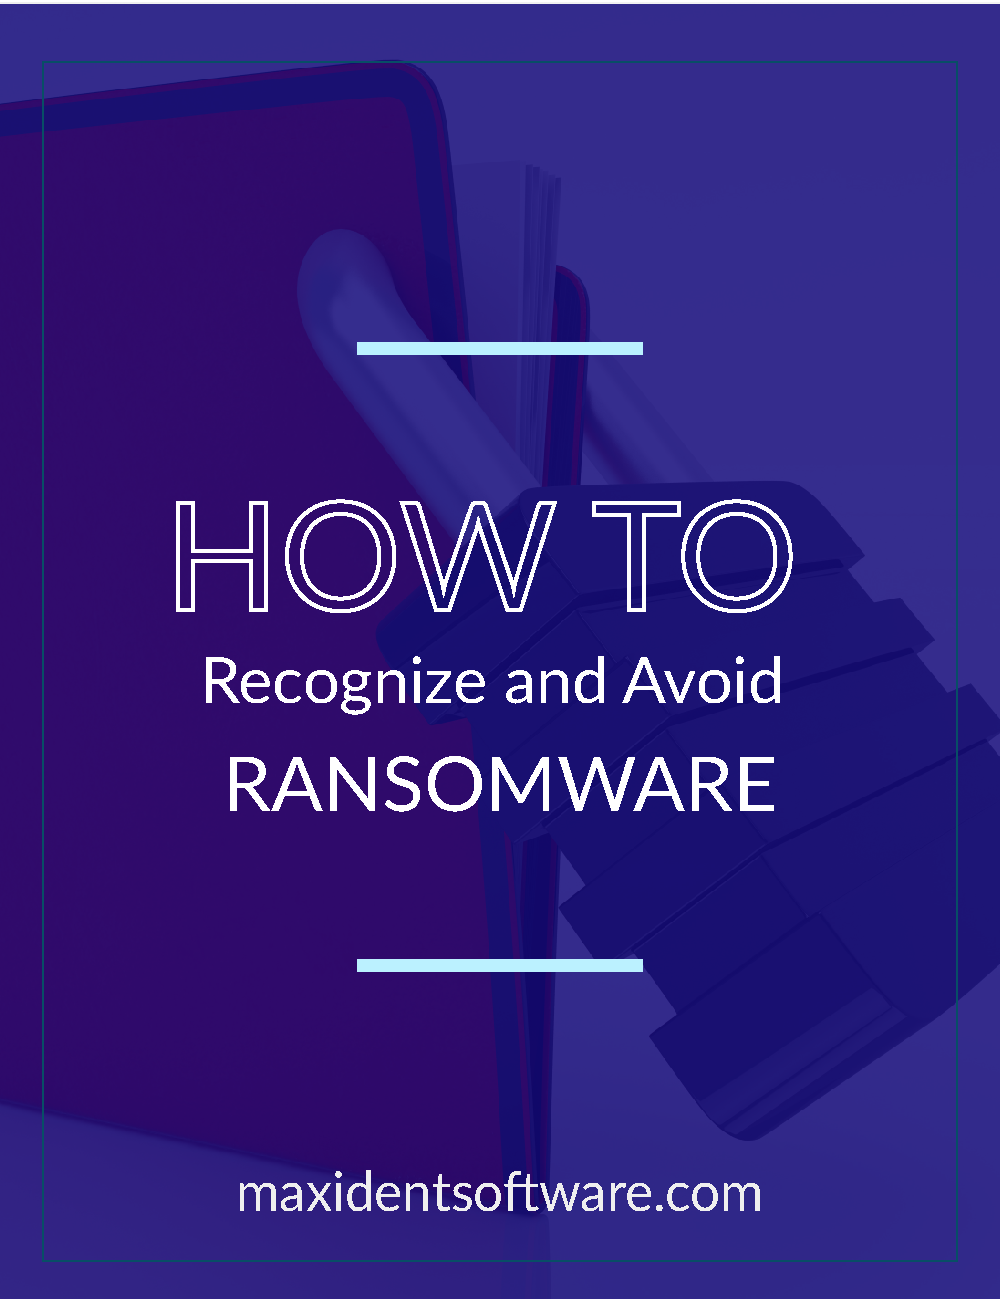 How to Recognize and Avoid Ransomware